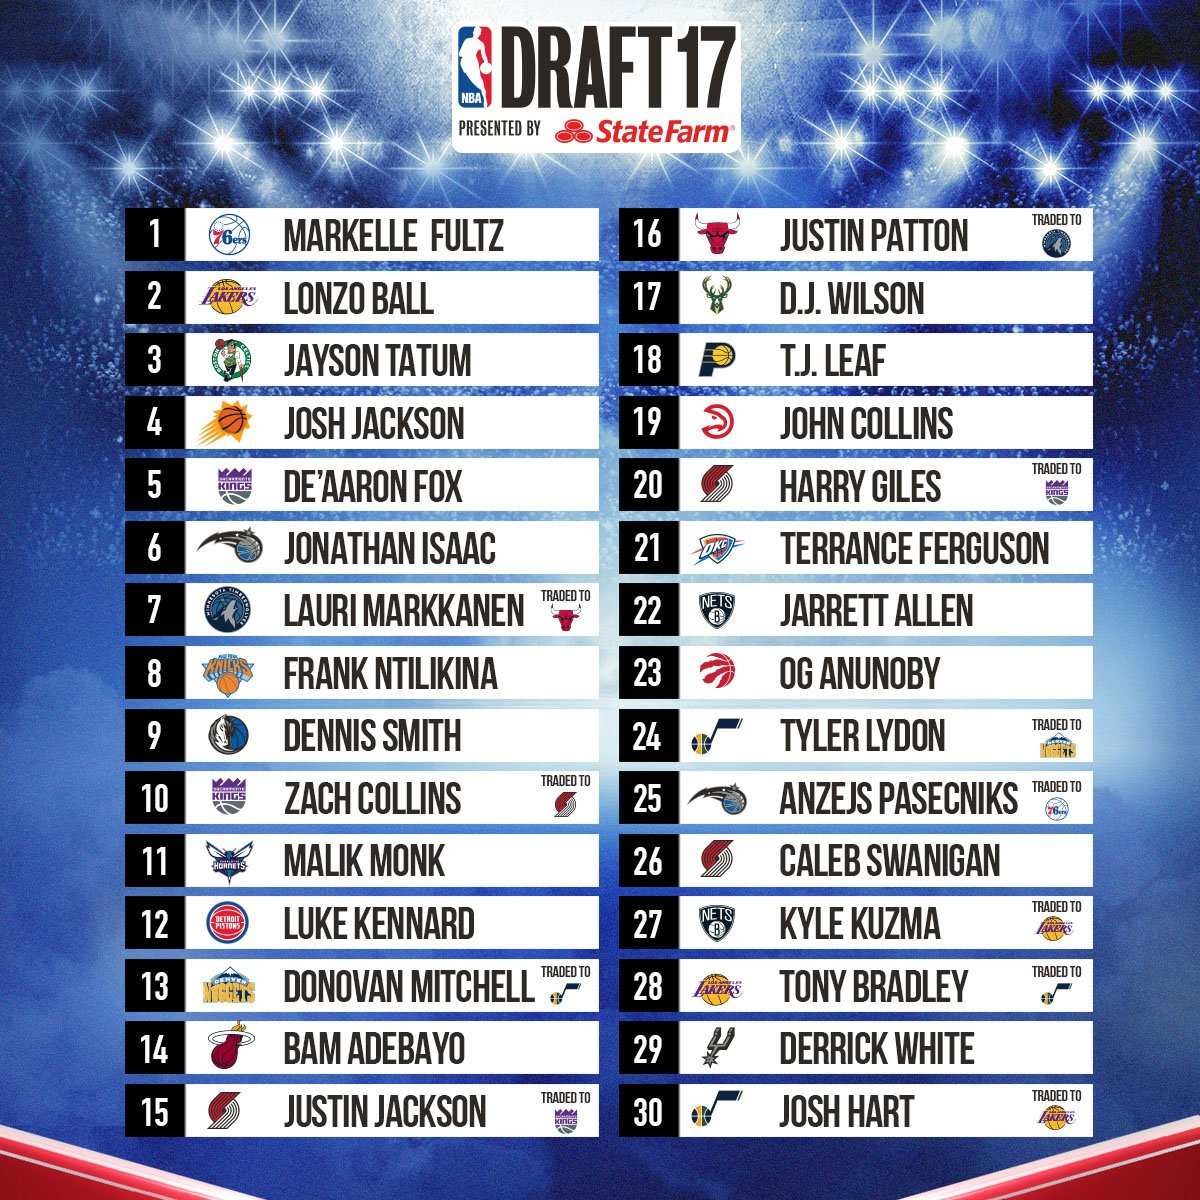 The first round of the 2017 #NBADraft! https://t.co/YXnkWNUxDI